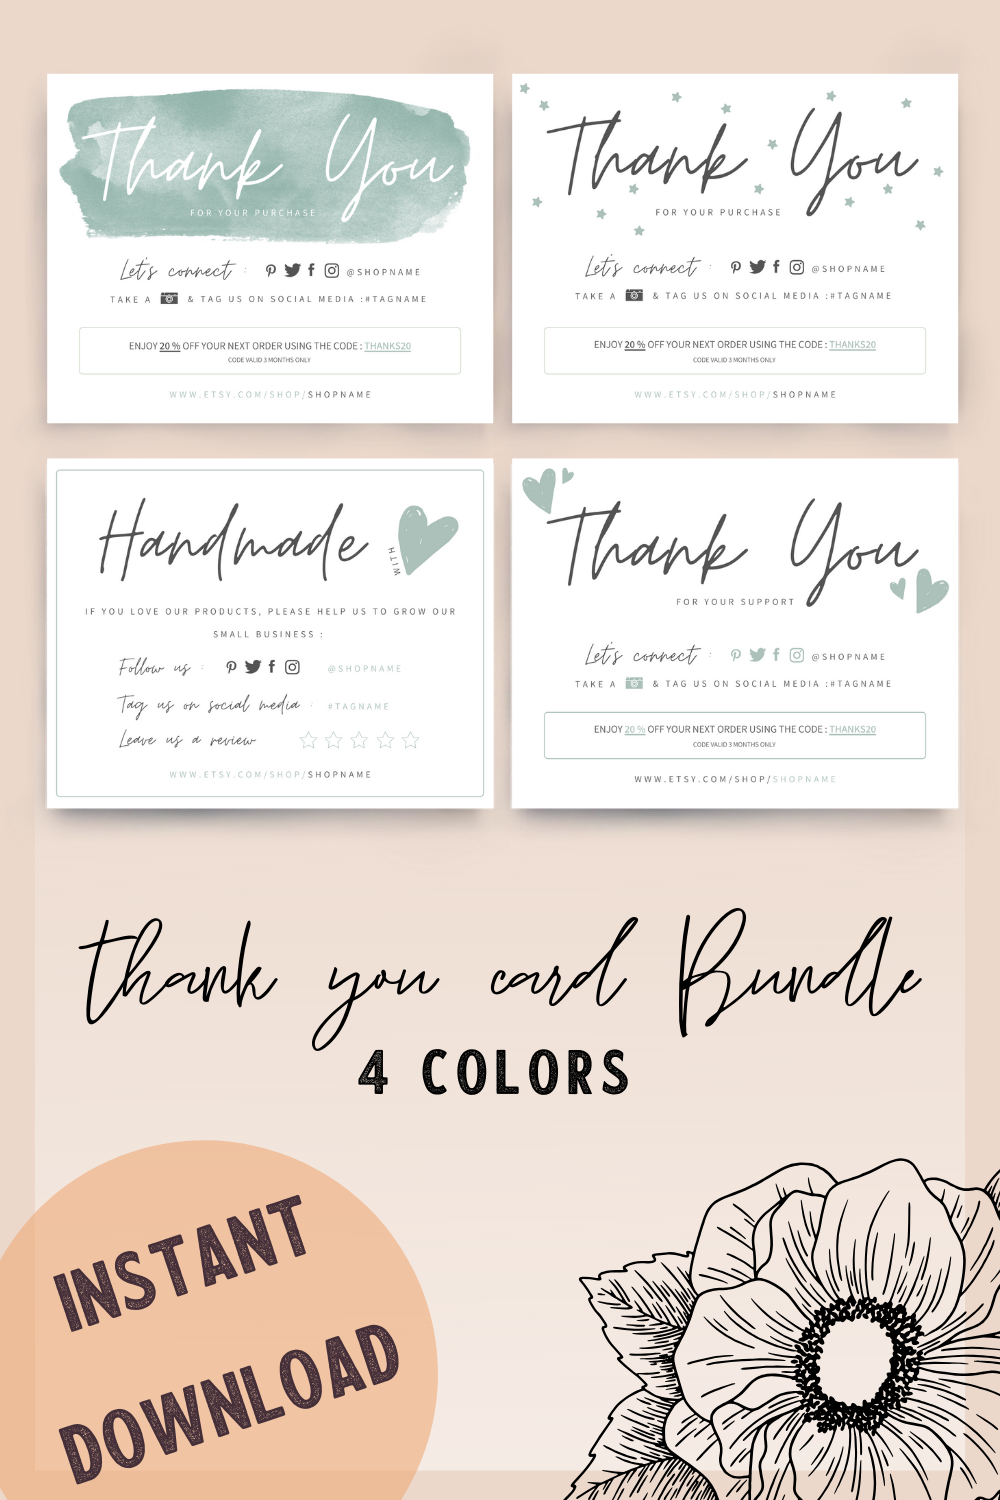 Diy Thank You Card Template Handmade With Love Card Bundle Multipack Small Business Maketing Thank You Card Design Thank You Card Template Thanks Card